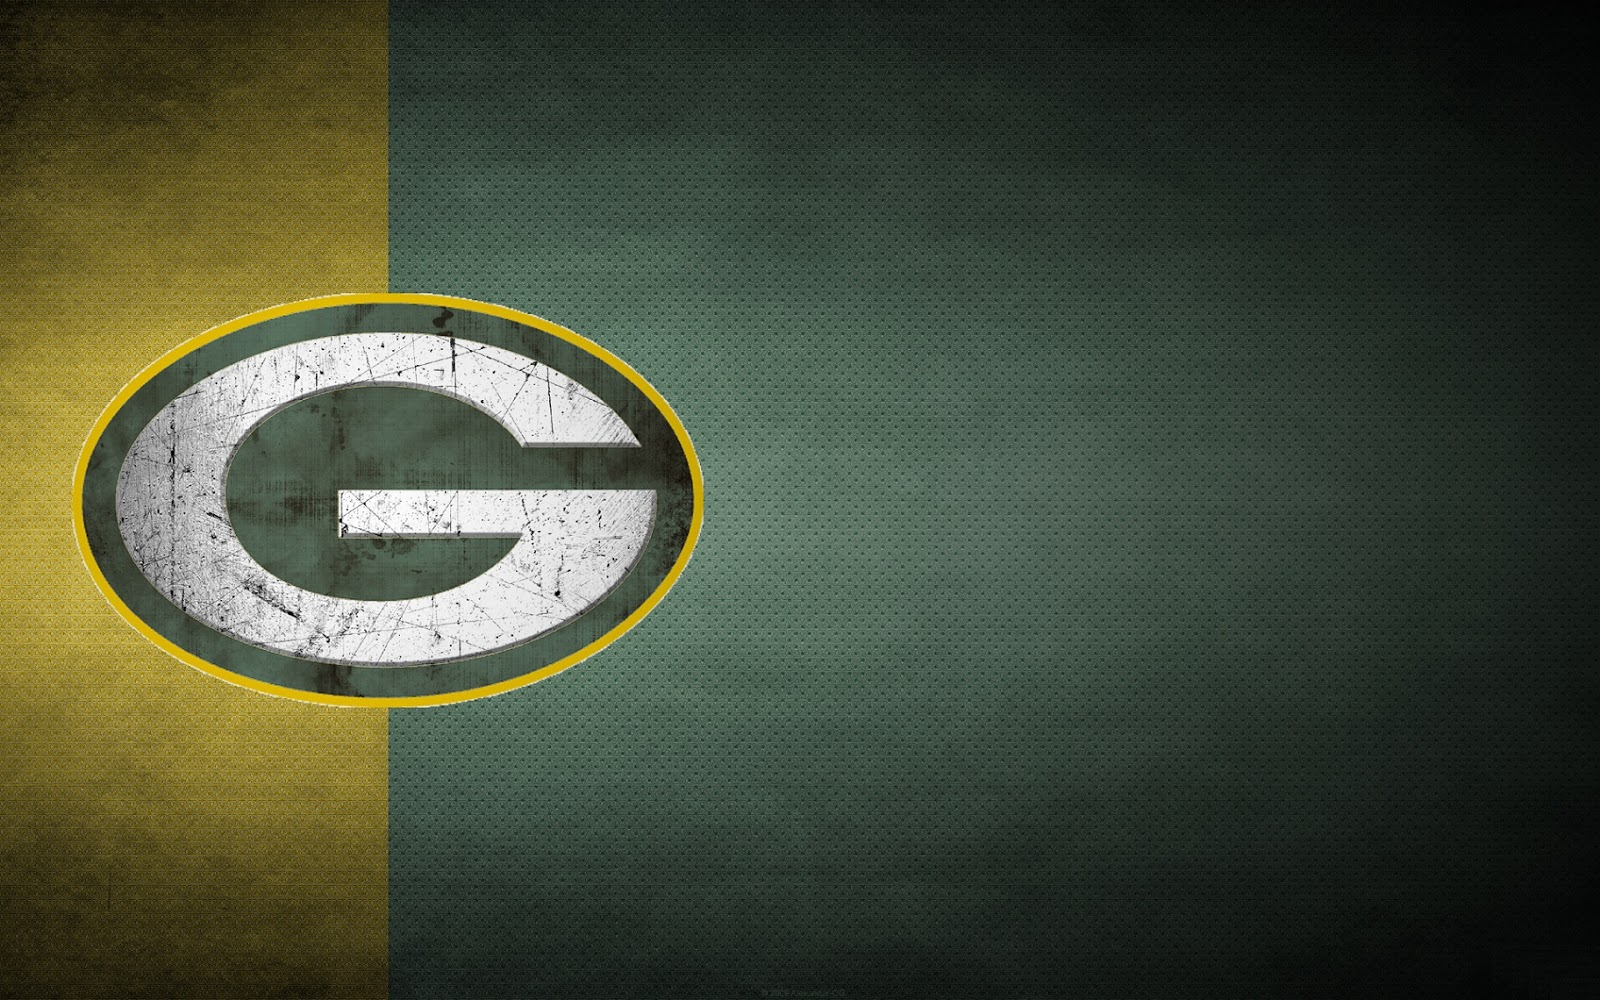 Free green bay packers wallpaper voltagebd Image collections